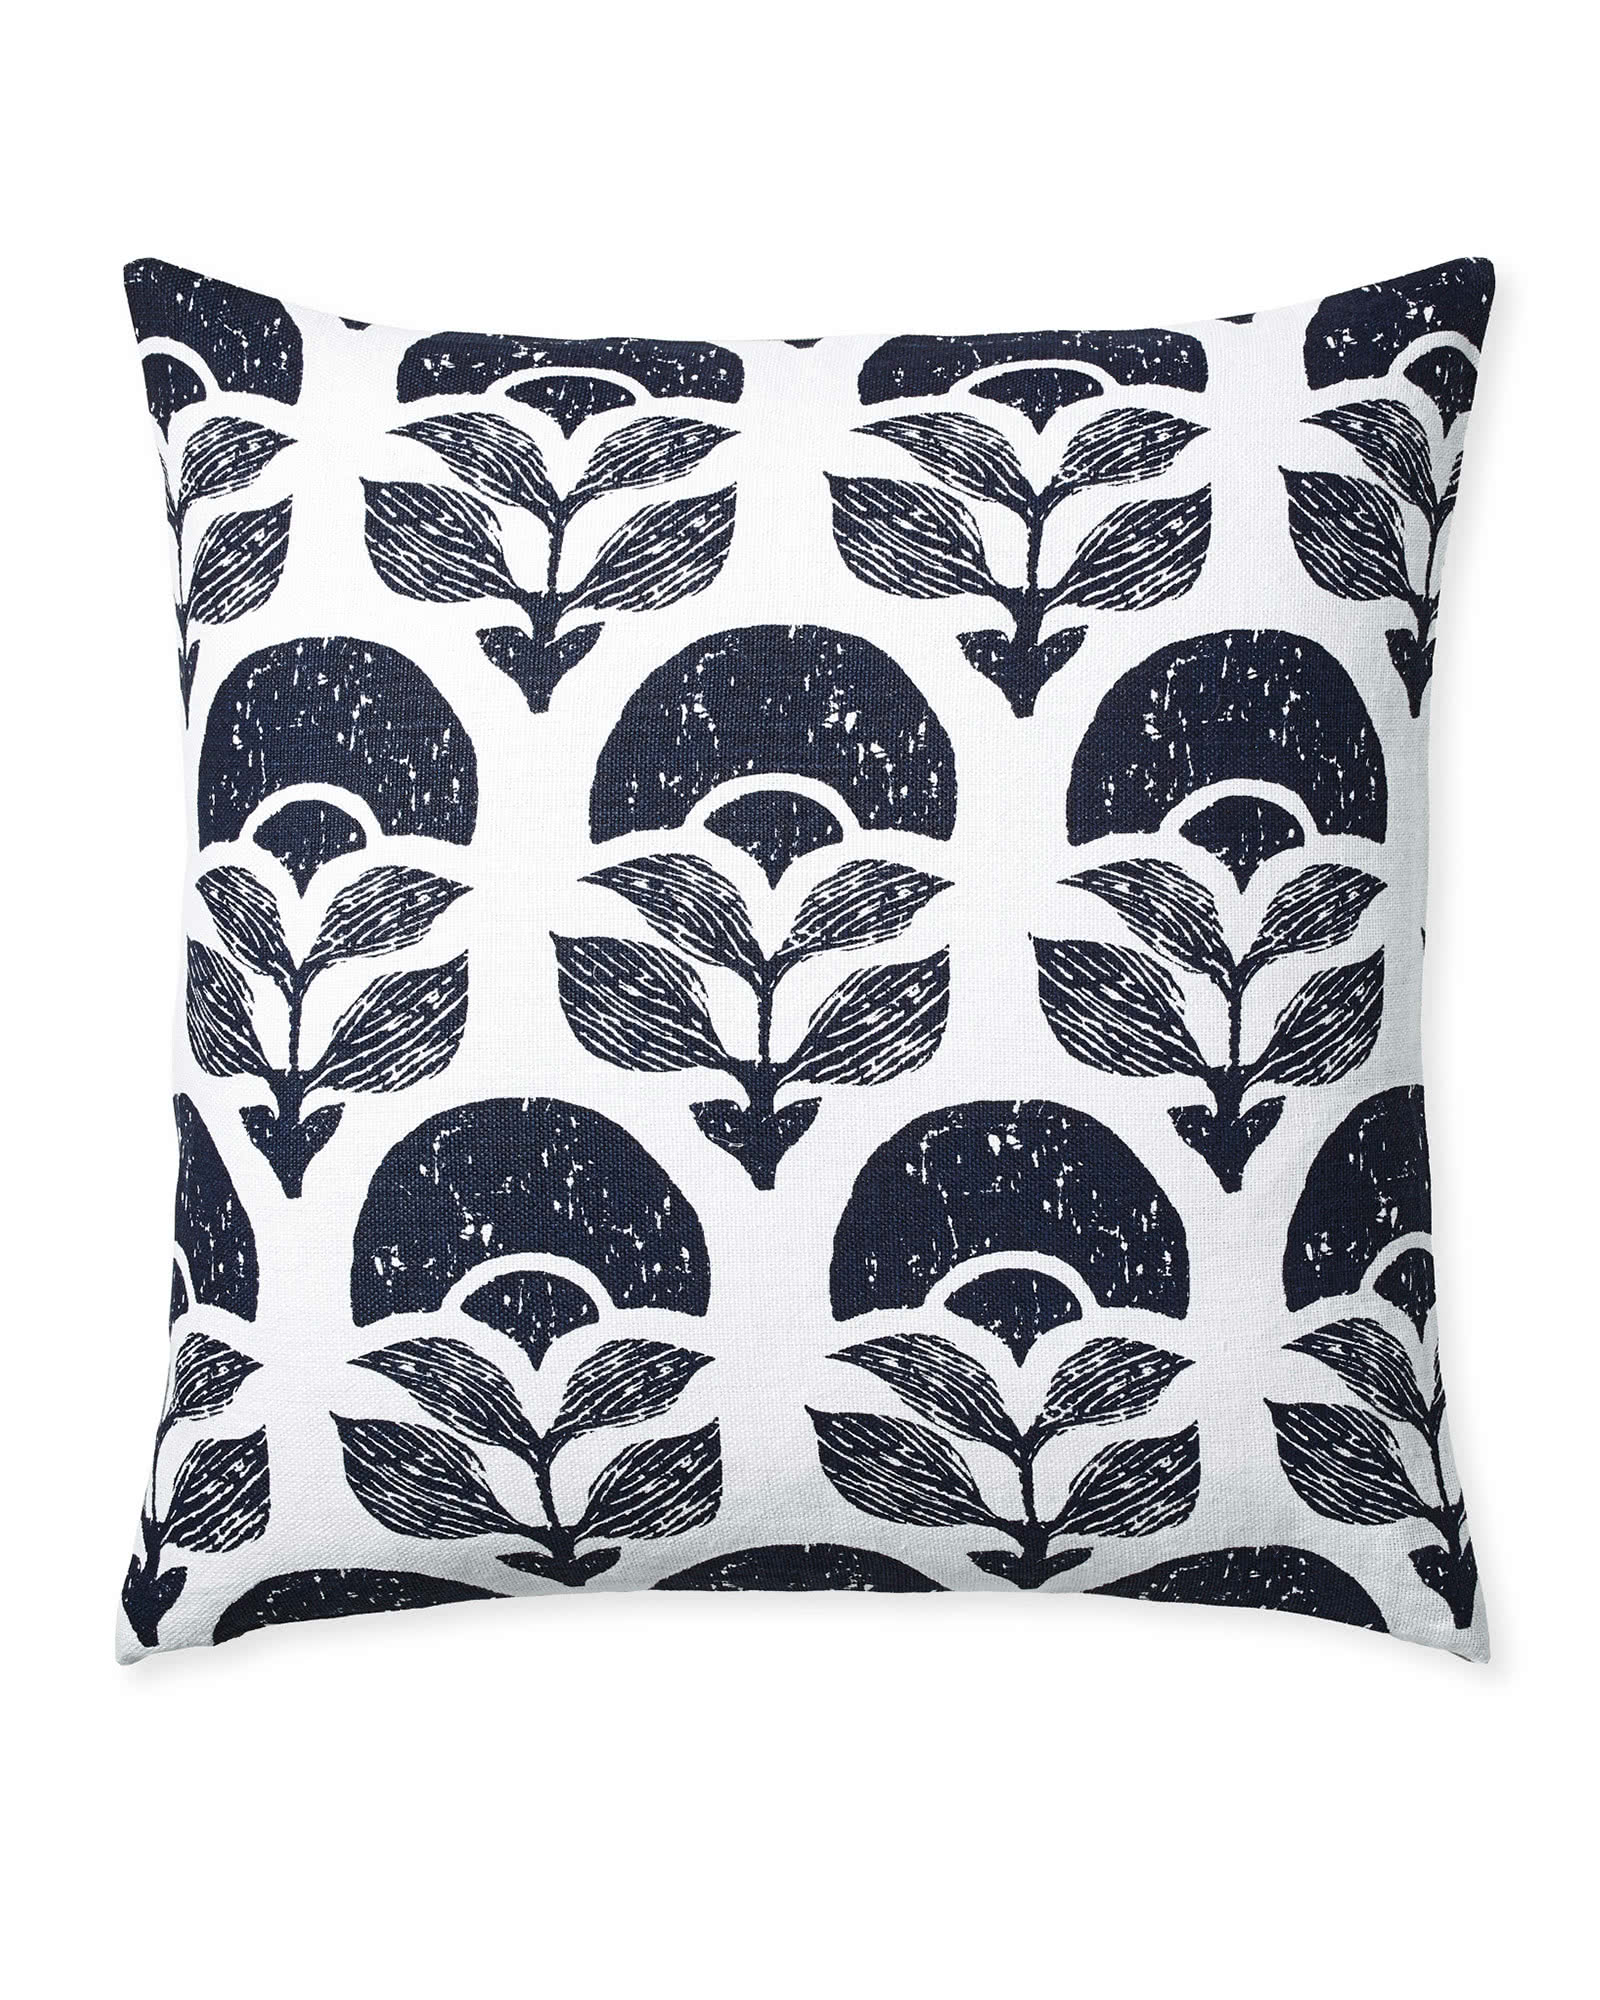 Larkspur Printed Pillow Cover, Midnight